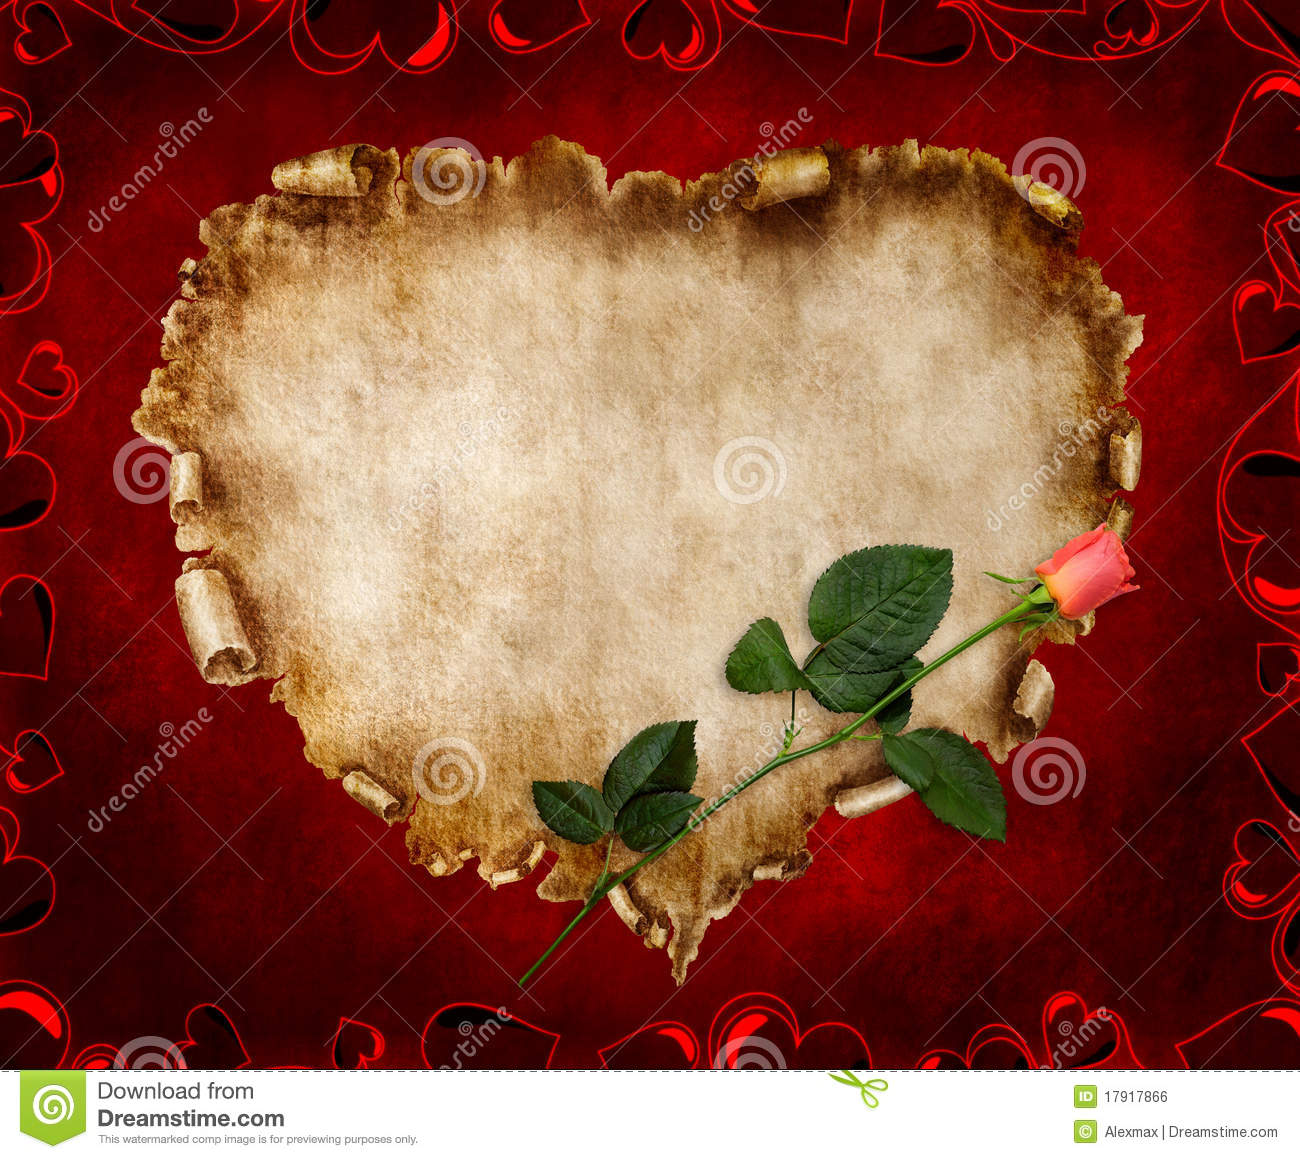 beautiful vintage stylized valentine card royalty free stock image, Beautiful flower